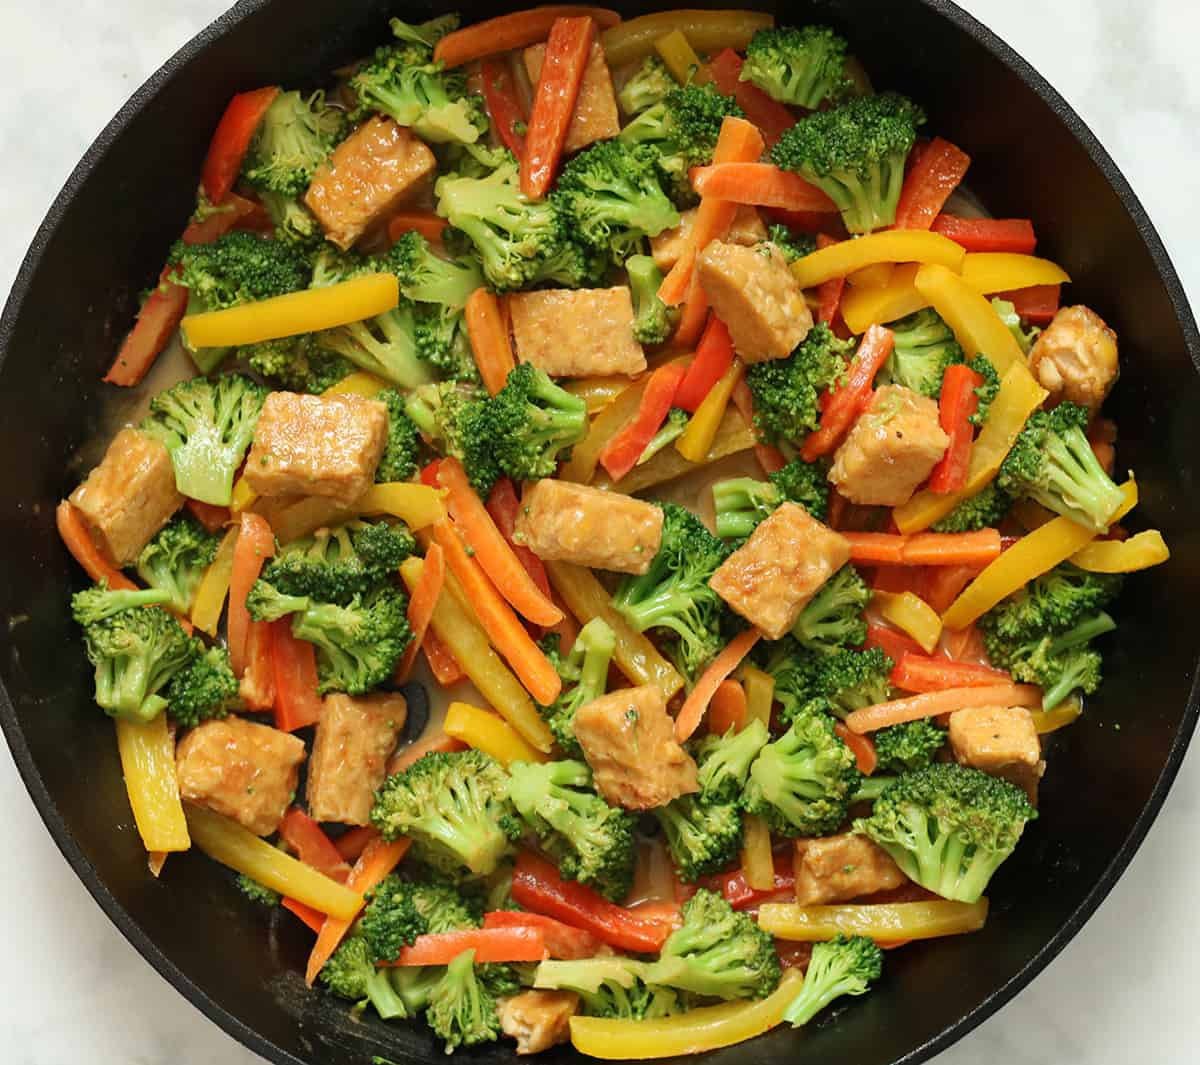 stir try with veggies and tempeh